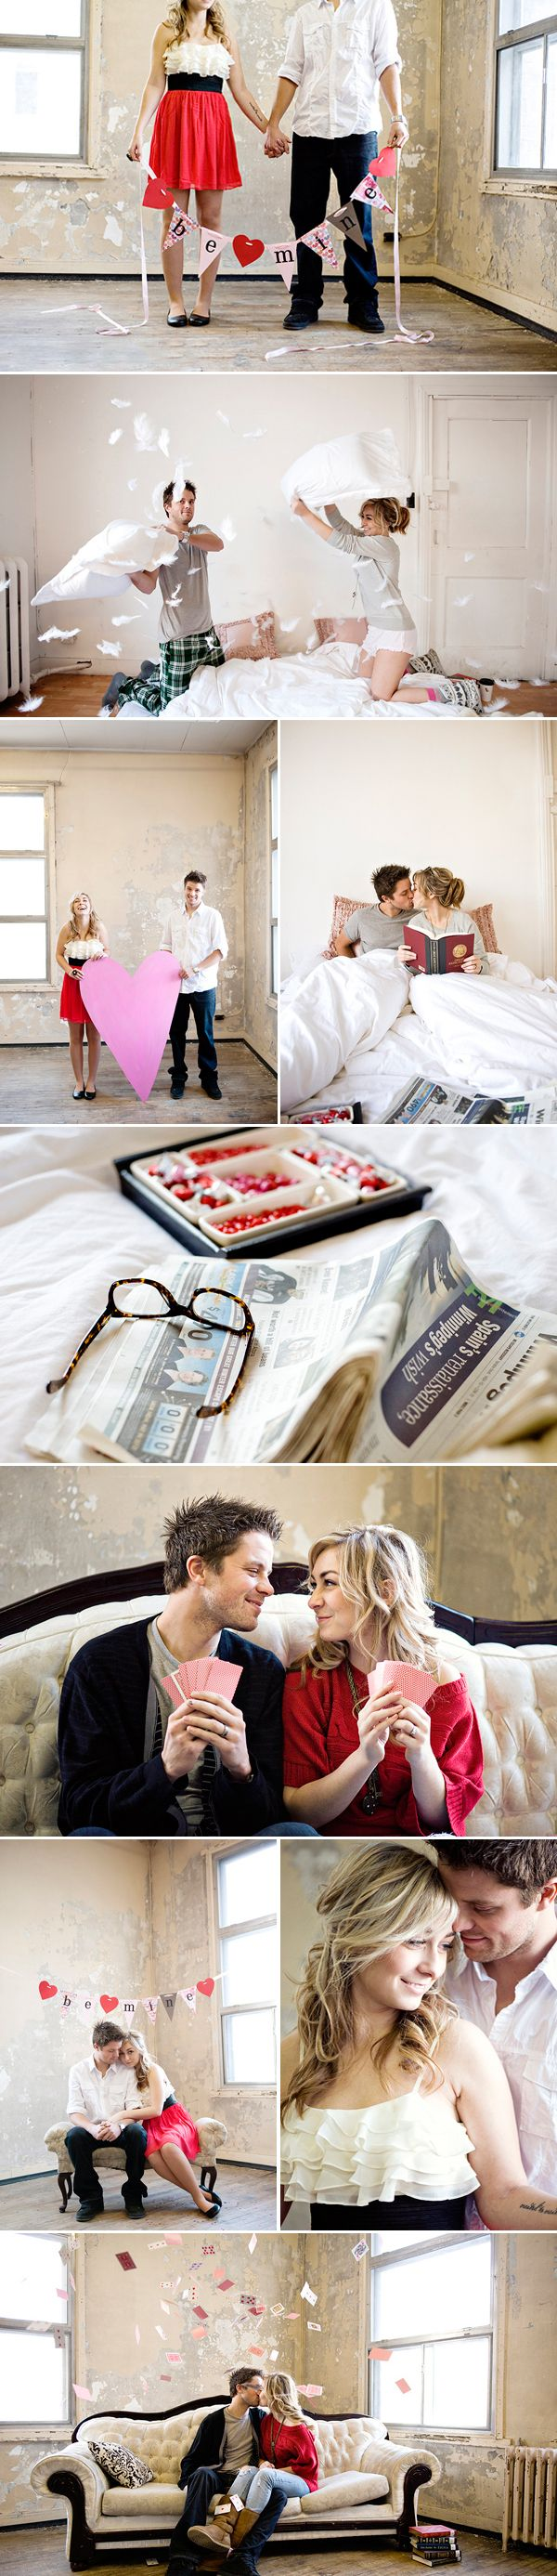 valentine day couple images download